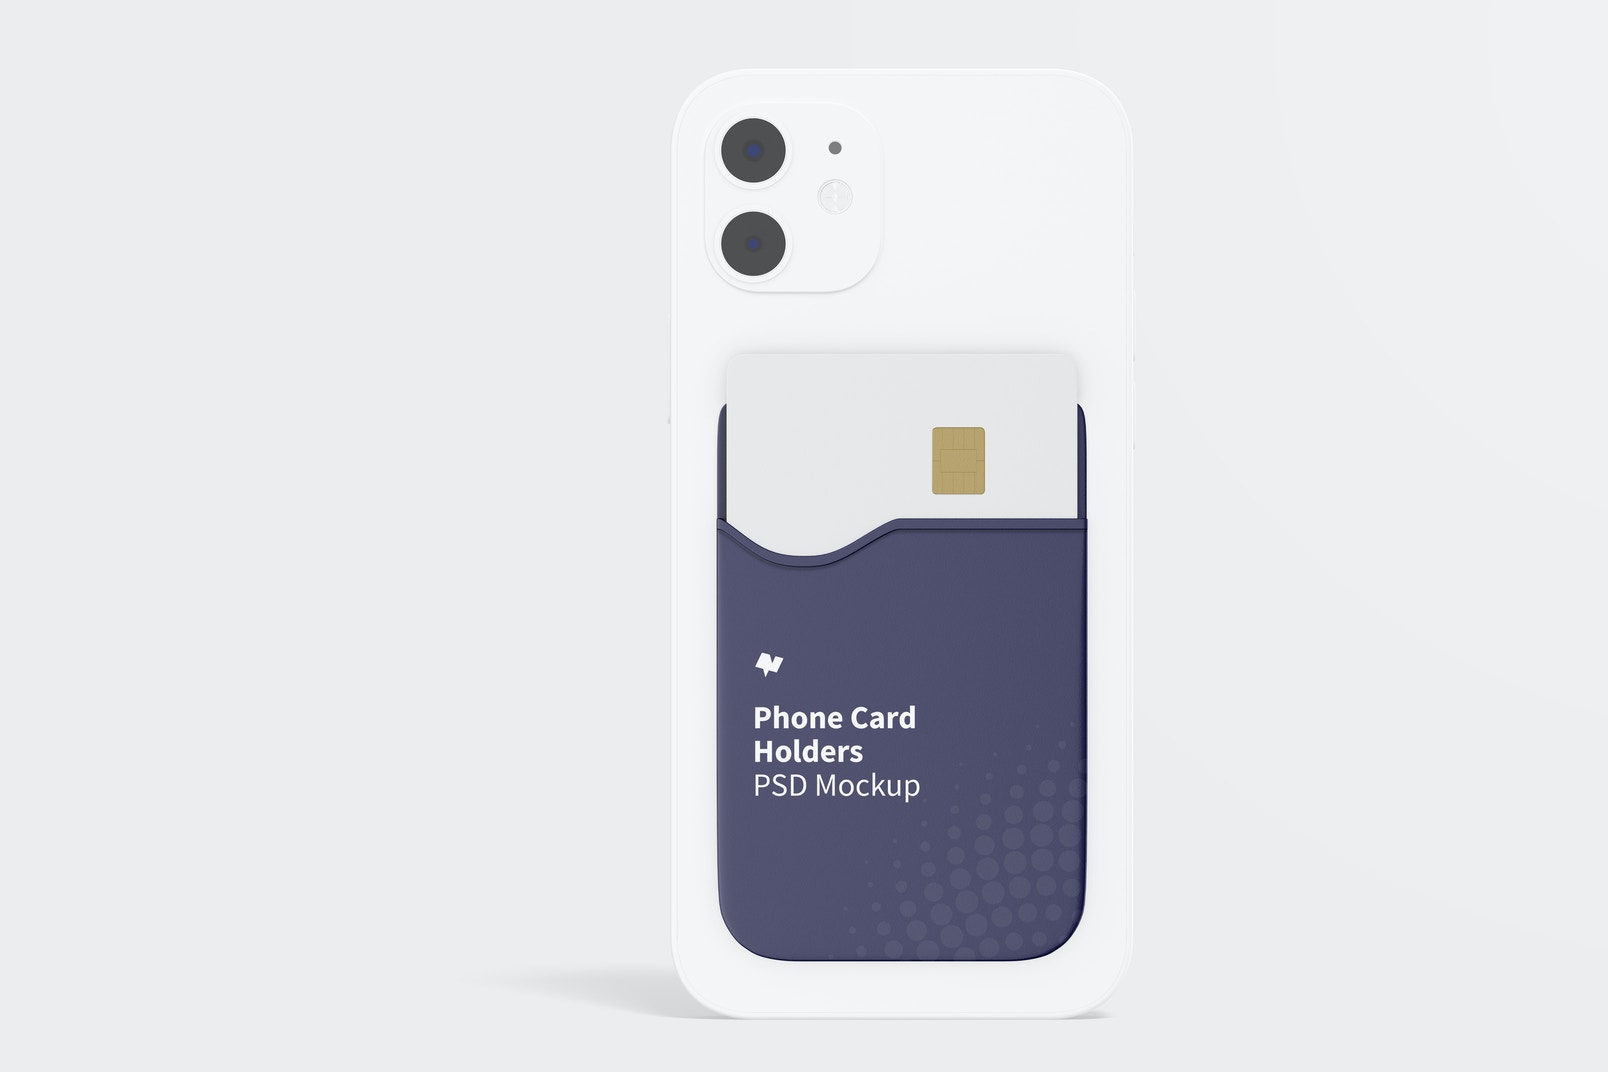 Phone Card Holder Mockup, Front View